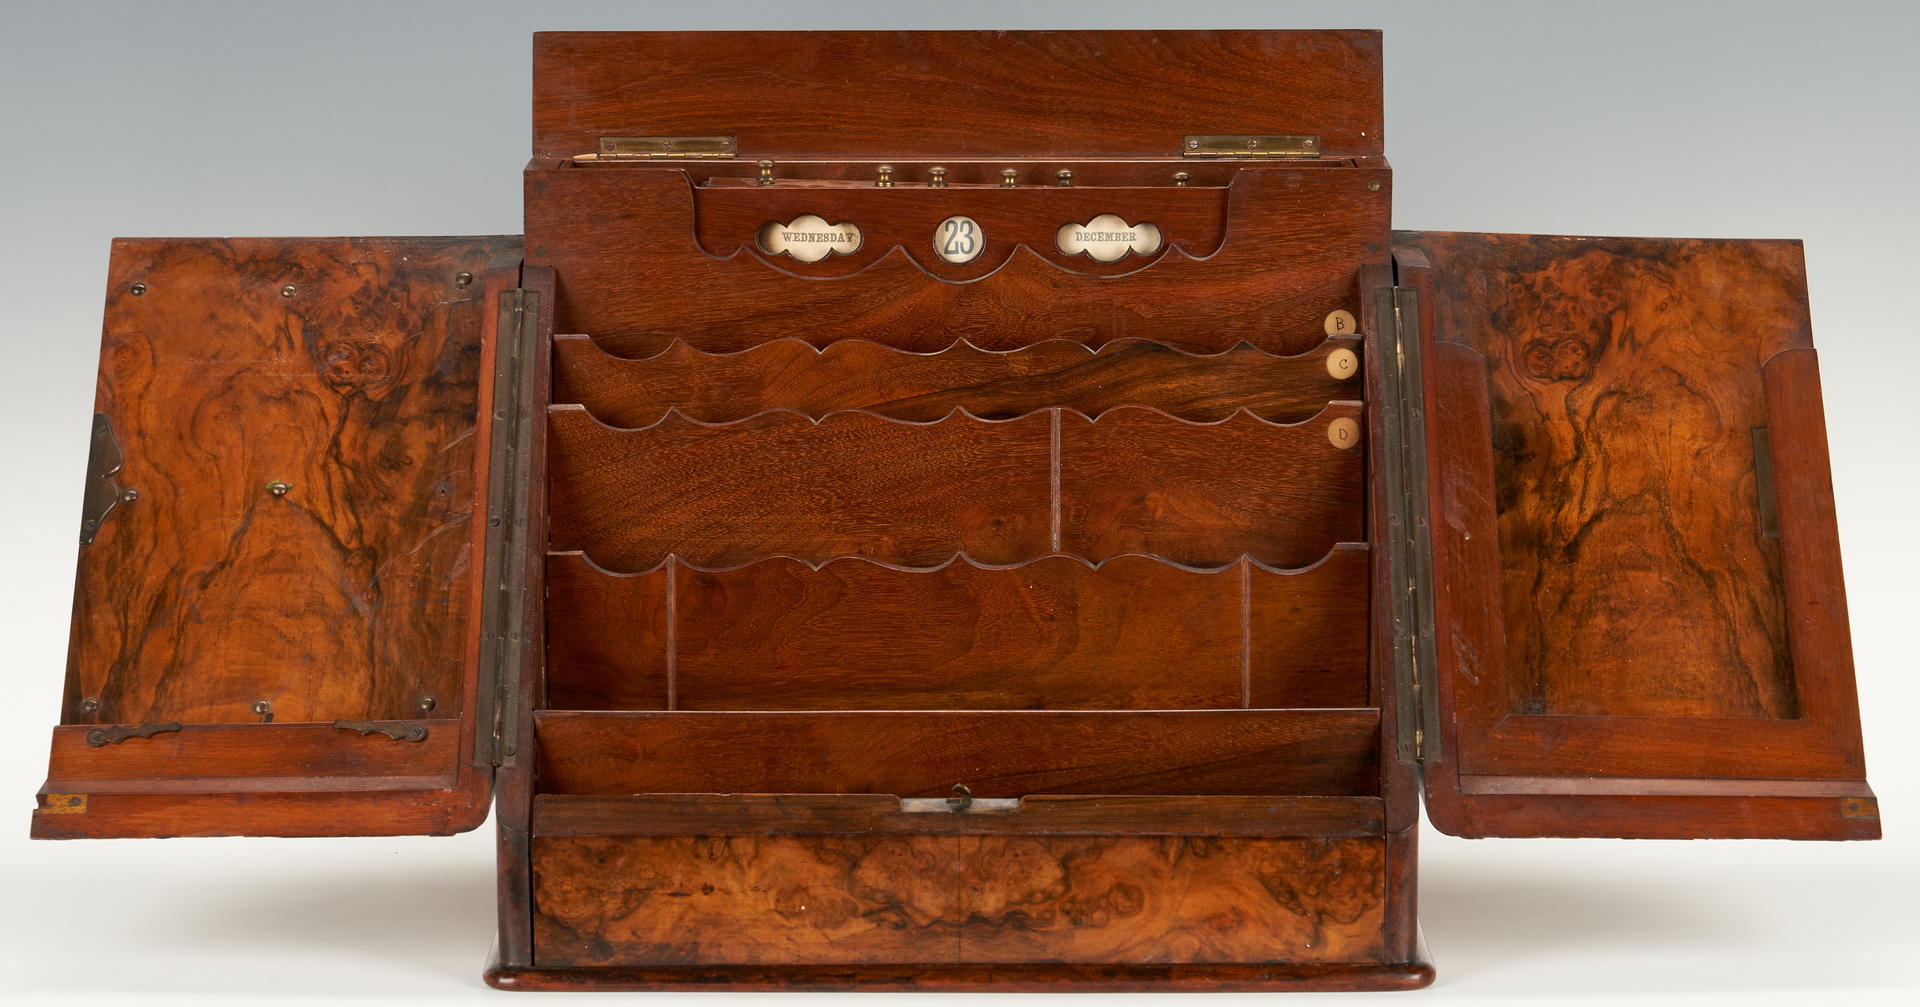 Lot 338: 19th C. Burlwood Stationery or Letter Box